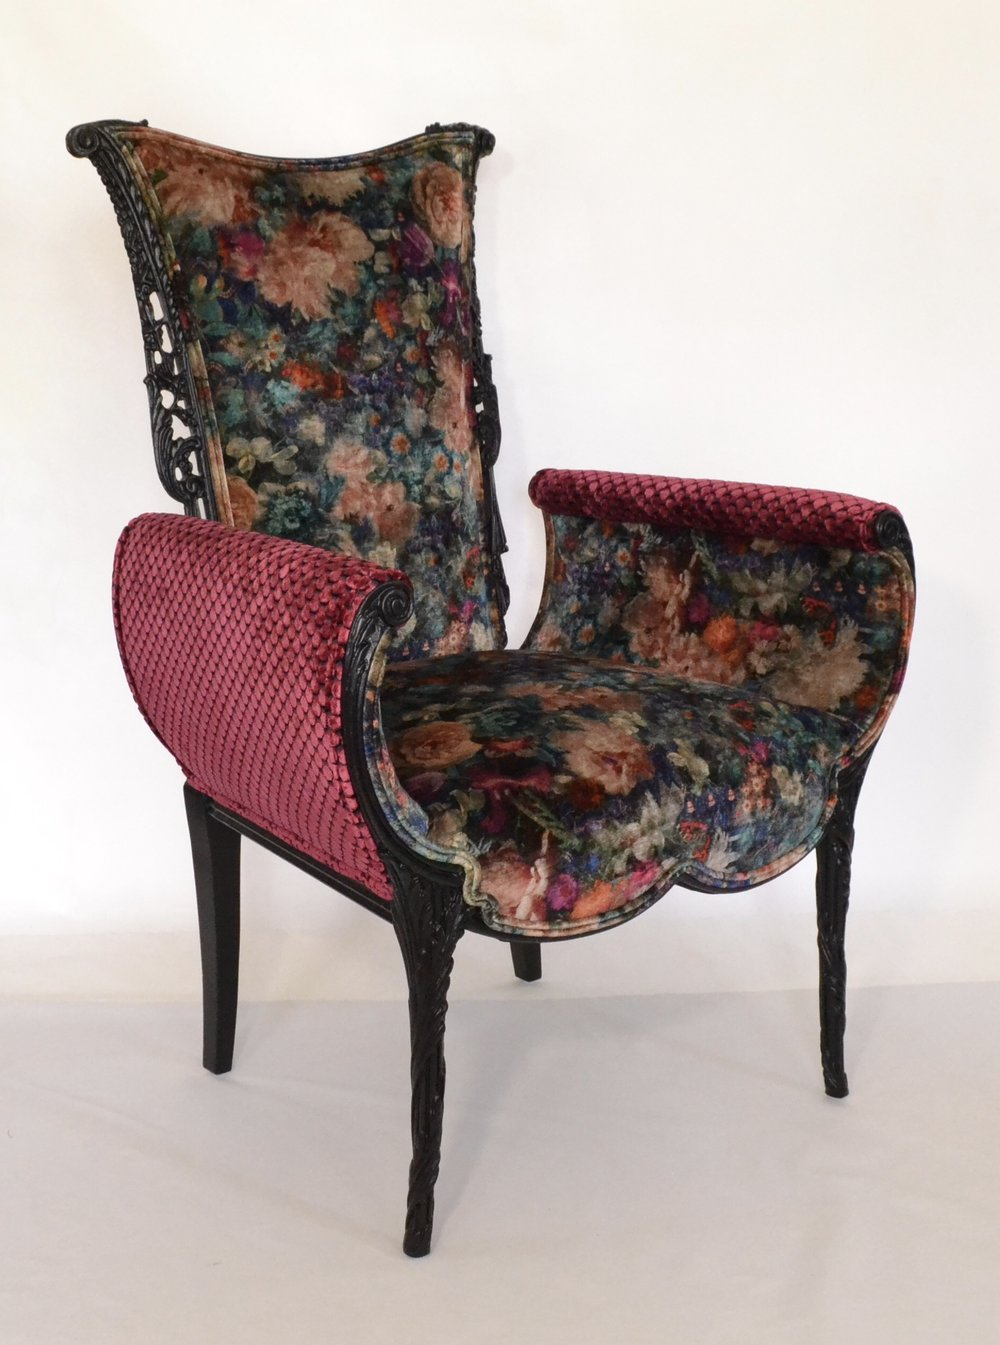 Italian Carved Fireside Chair in Designer Contrasting Velvets